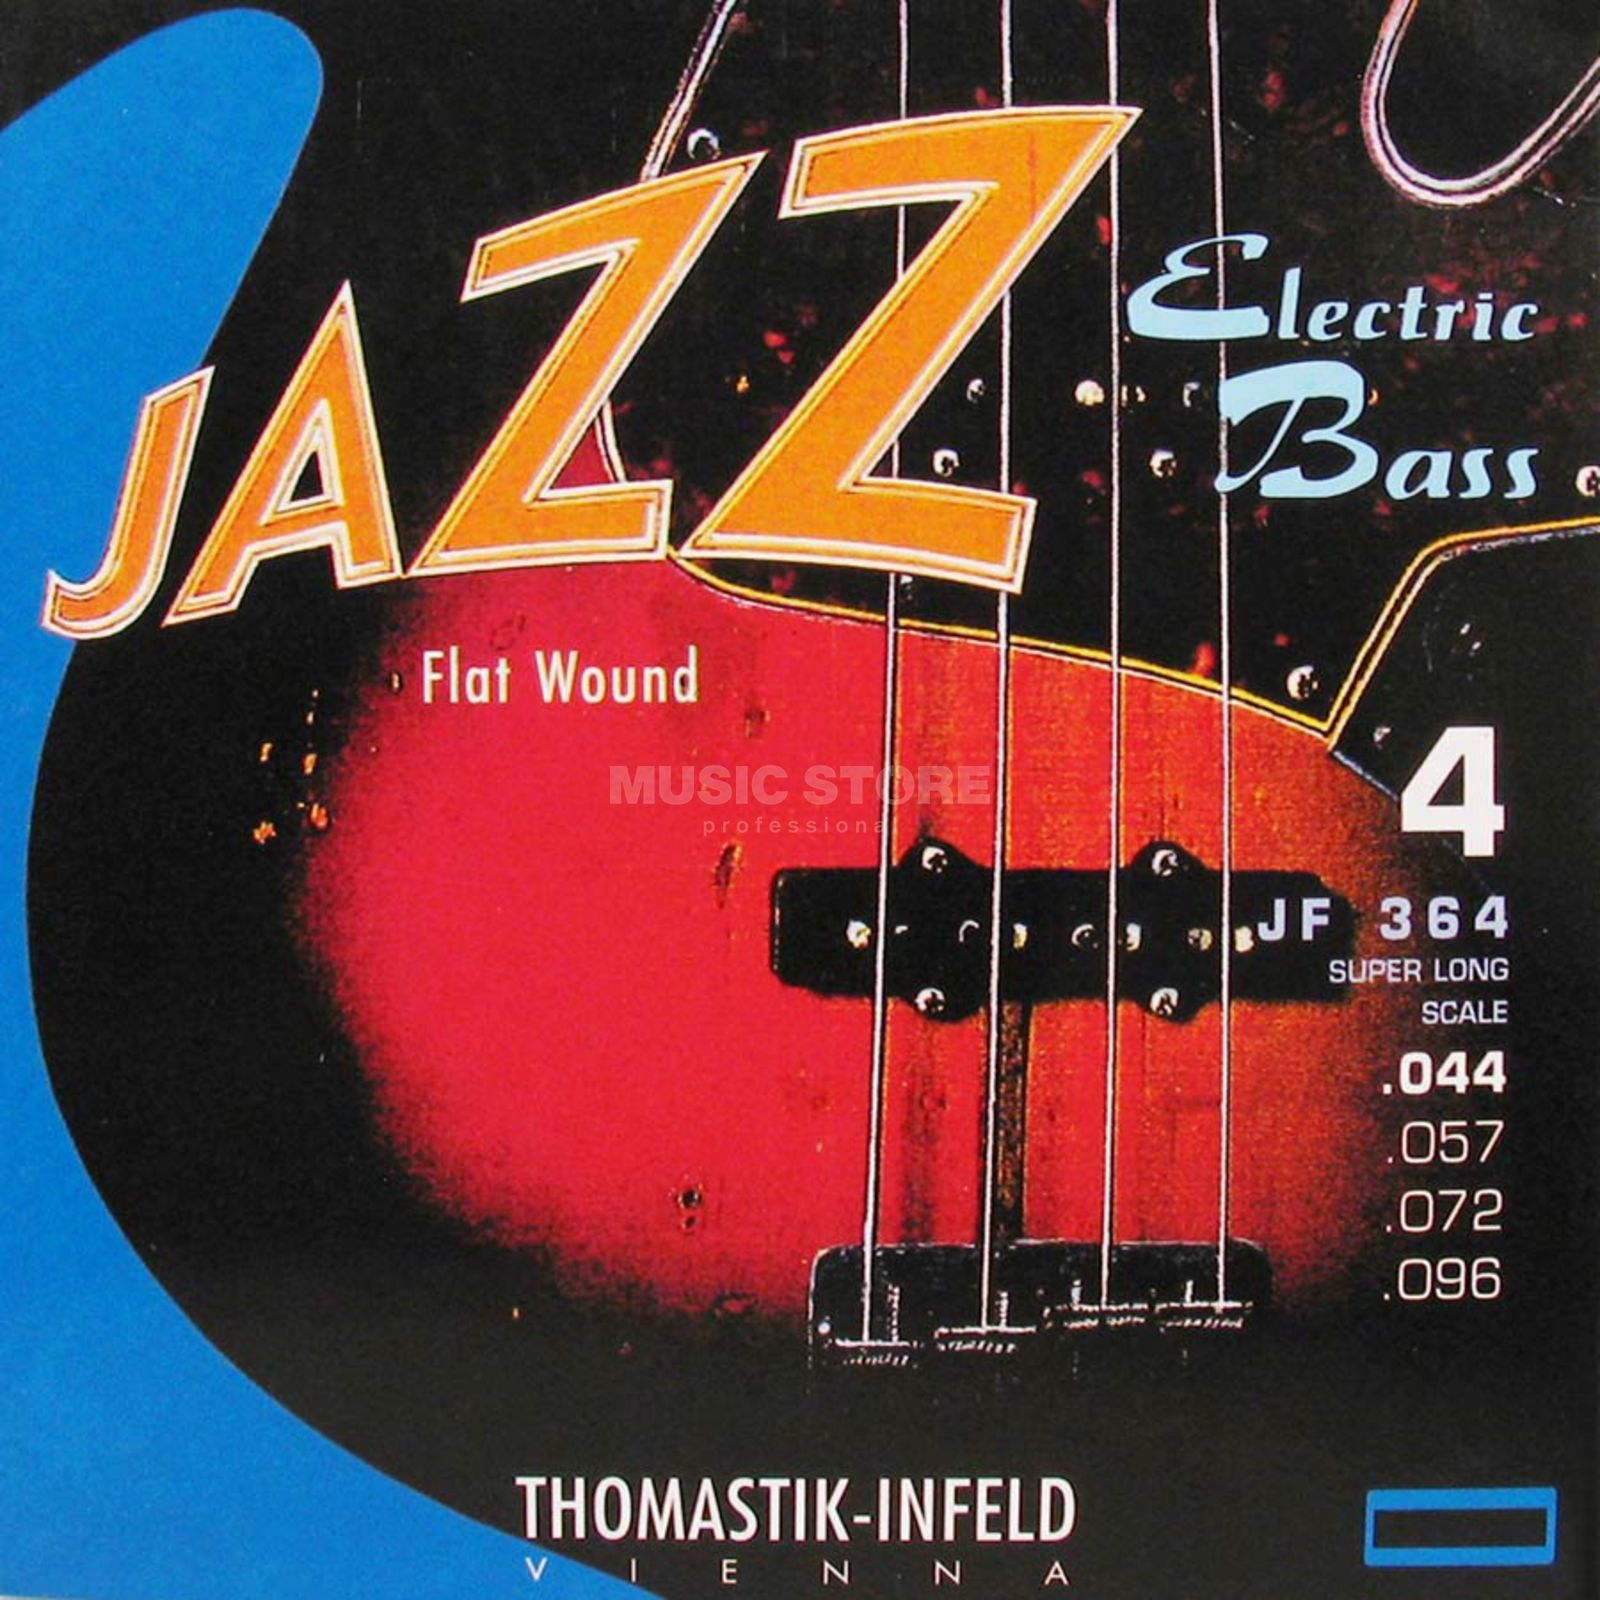 Thomastik 4 Bass Strings JF 364 44-96 Nickel Flat Wound Zdjęcie produktu